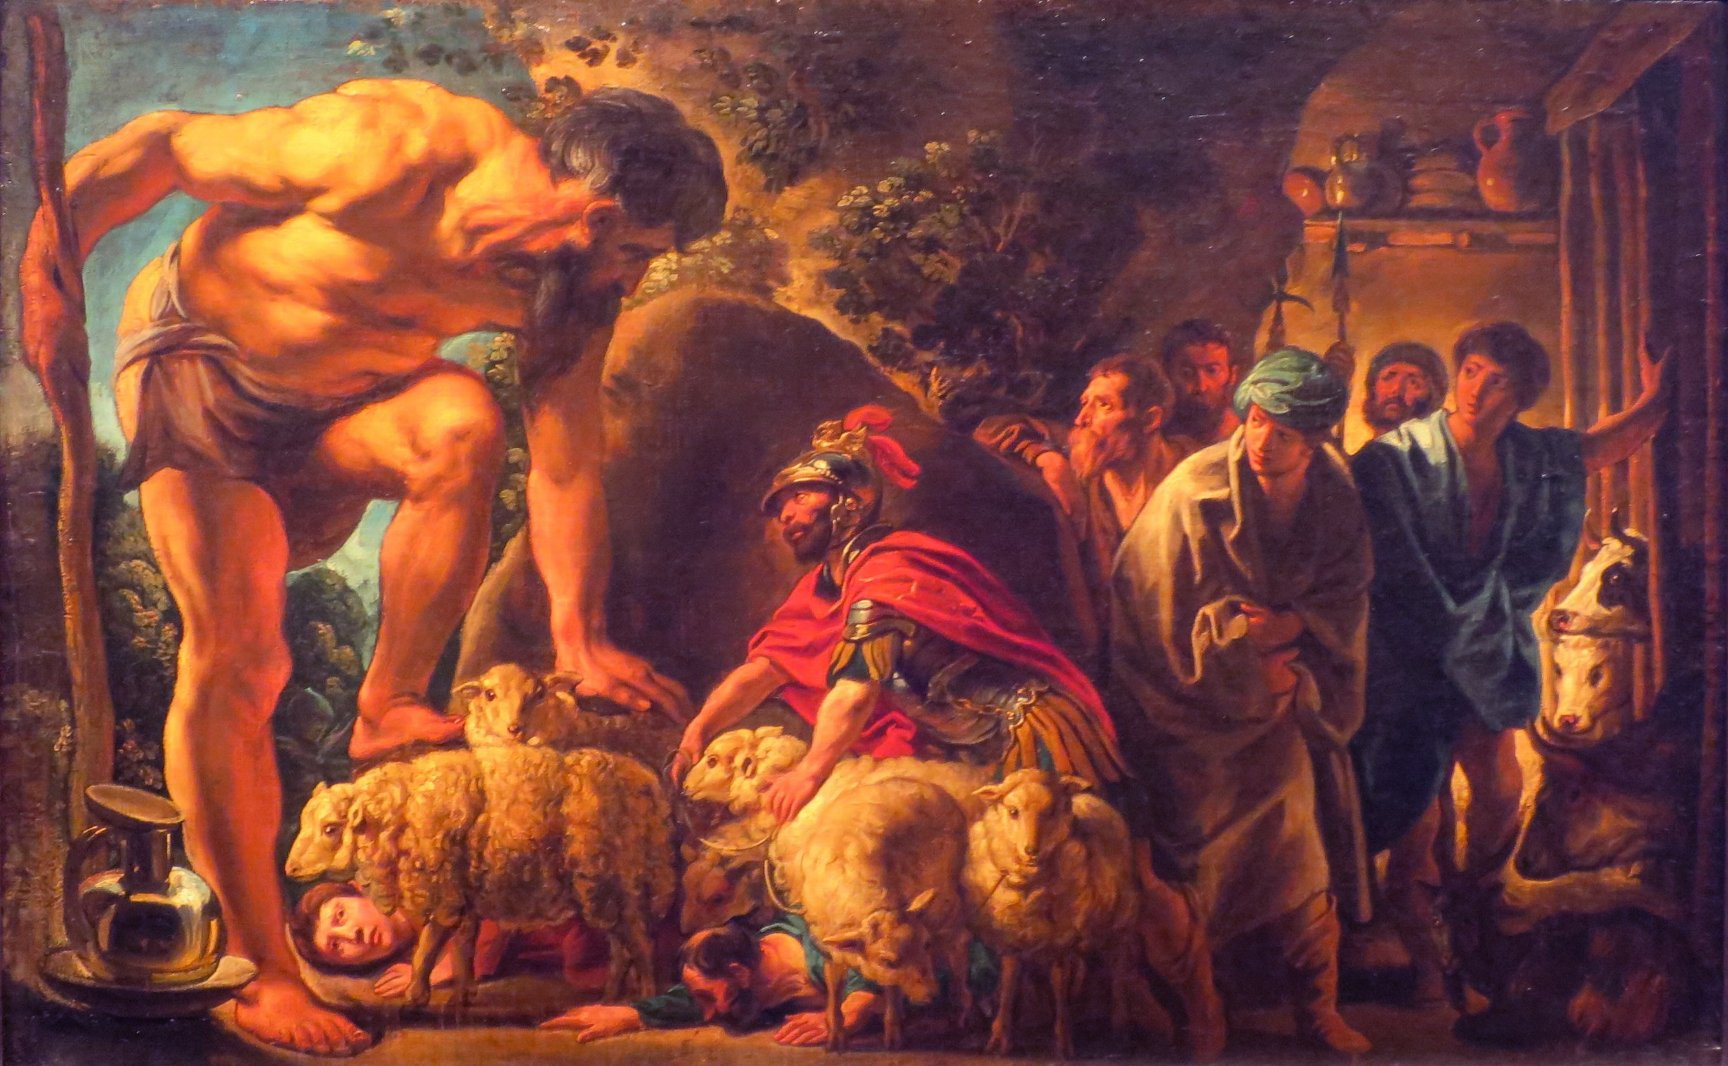 odysseuss non heroic adventure Odysseus' journey begins twenty years prior to the start of the odyssey at home, at home, he is called upon by agamemnon to join the atrides in a war to conquer troy and.